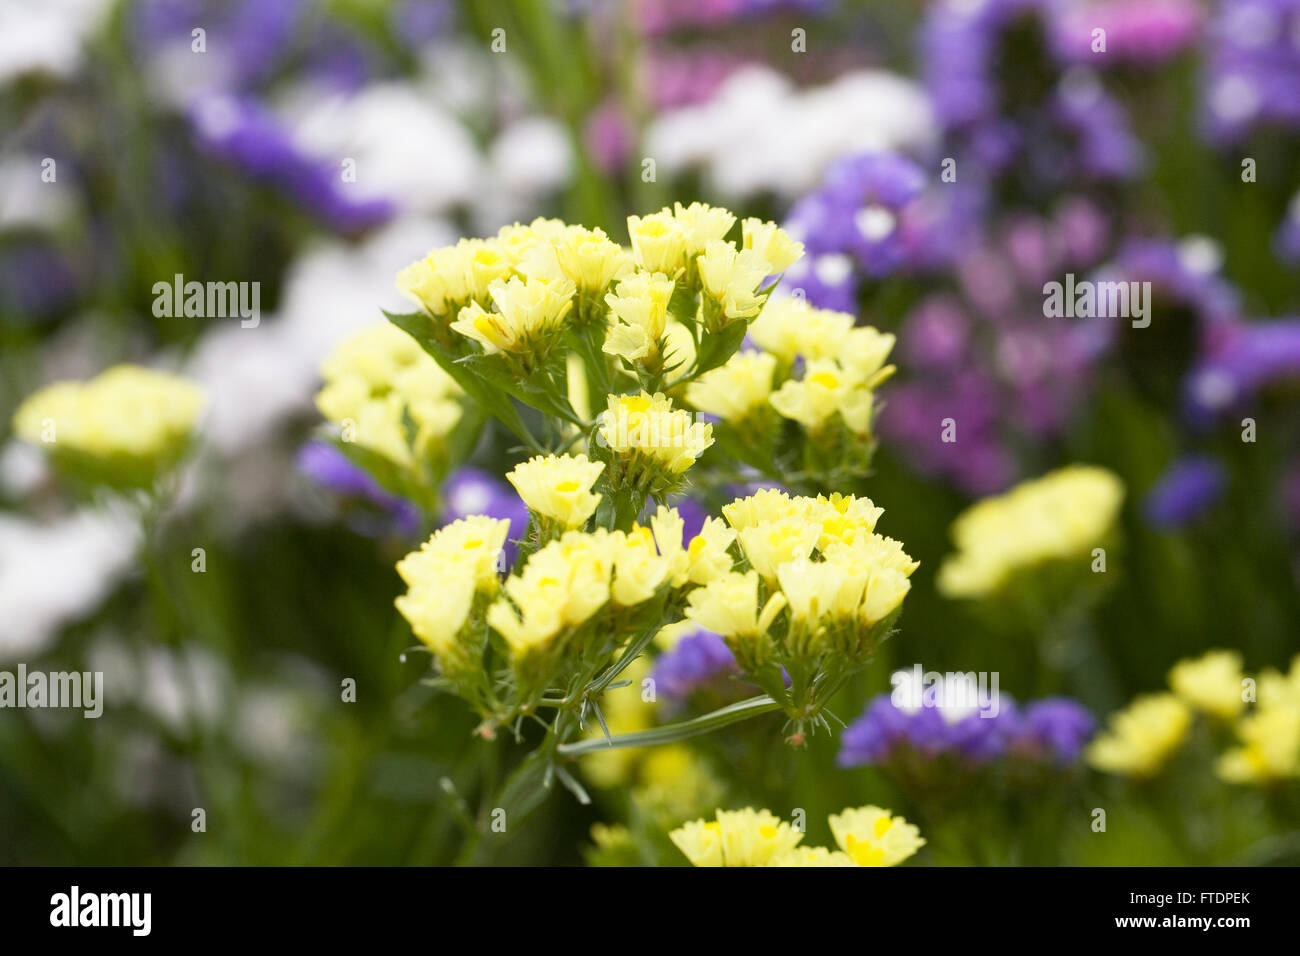 Limonium sinuatum 'Forever' flowers. Statice growing in a summer border. Stock Photo